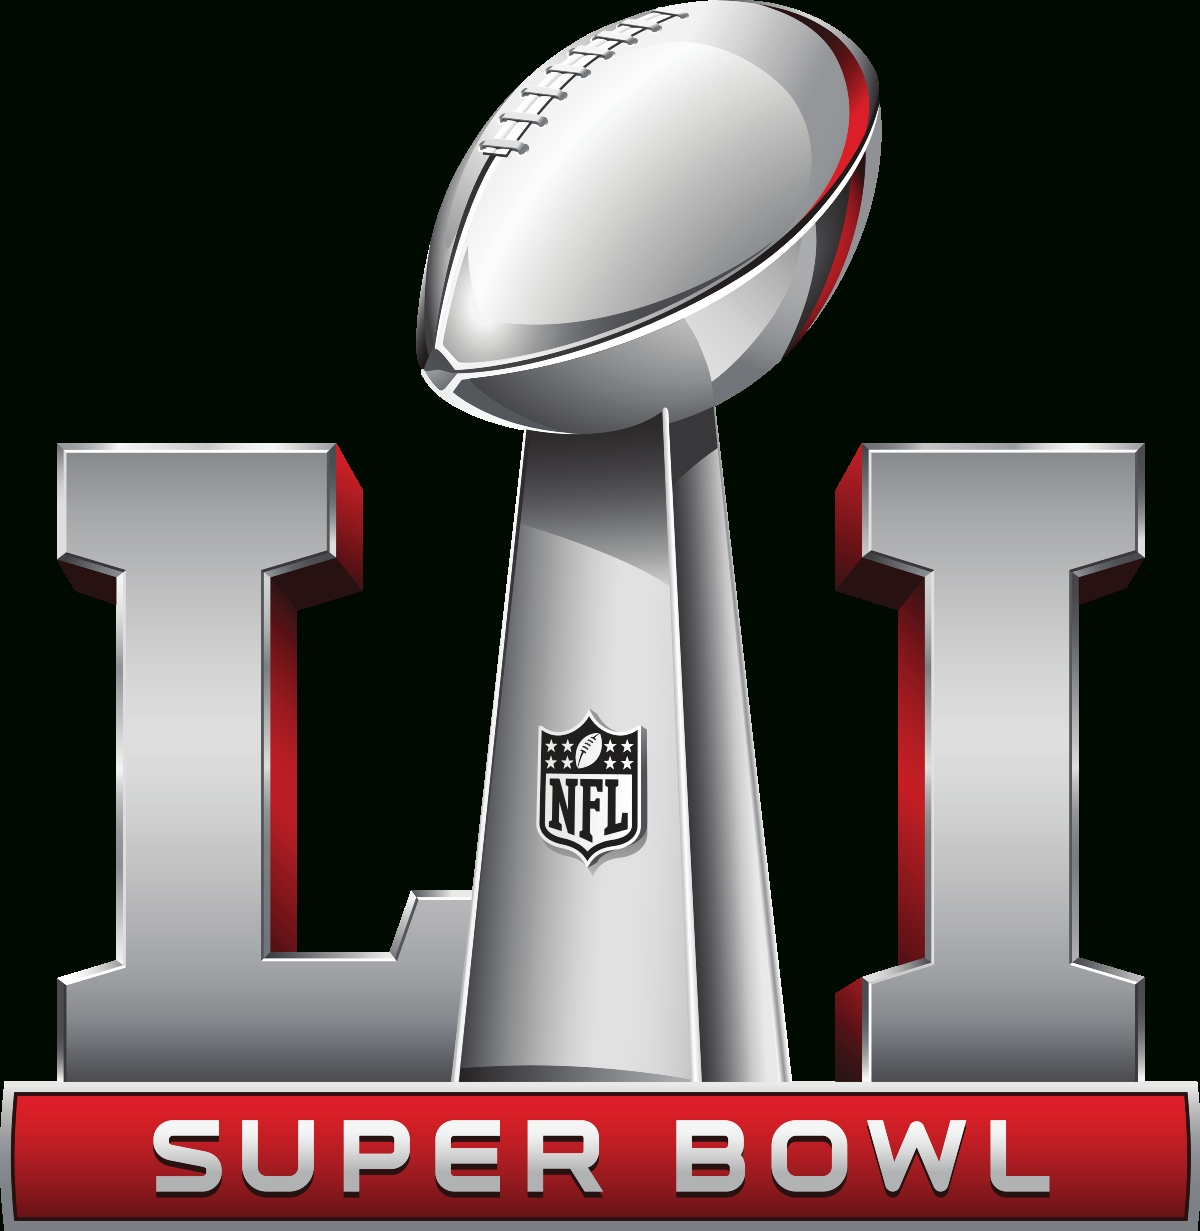 2019 Super Bowl Live Sports Streaming Free Nfl Live Stream inside Super Bowl 2019 Mvp Vote Text Number